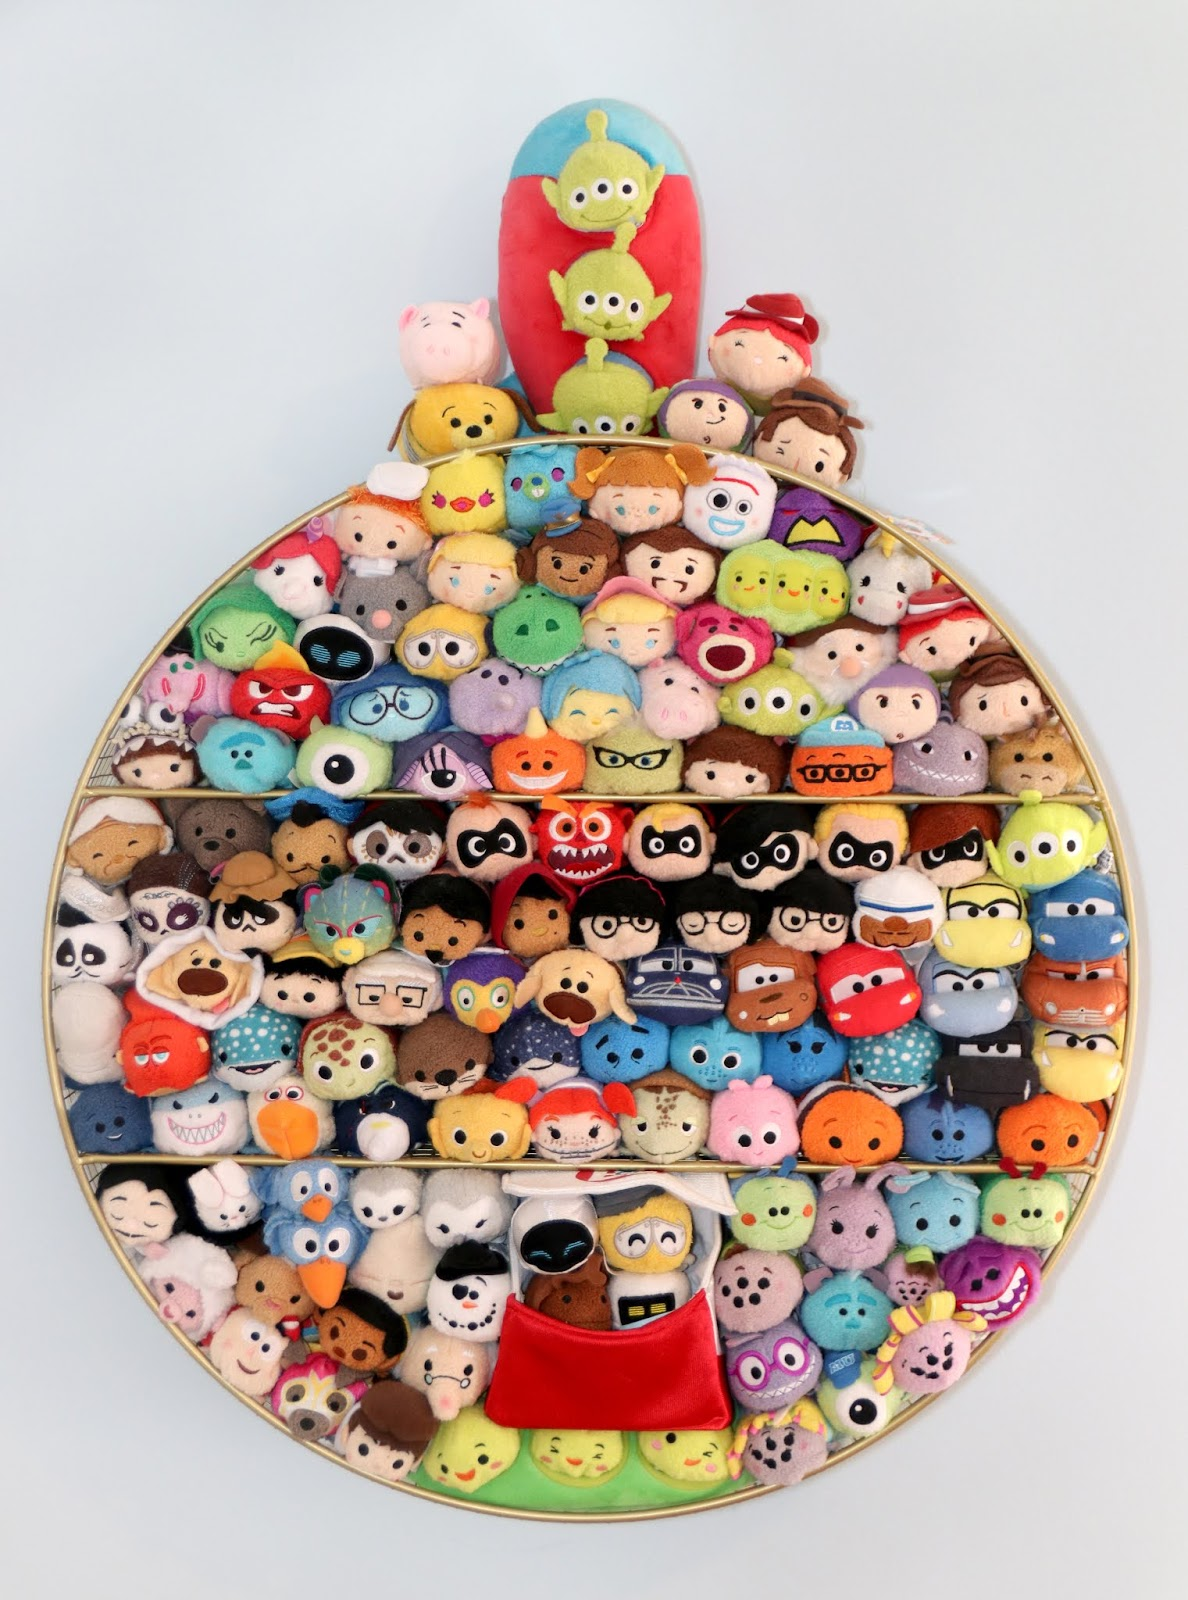 disney pixar tsum tsums shelf complete collection